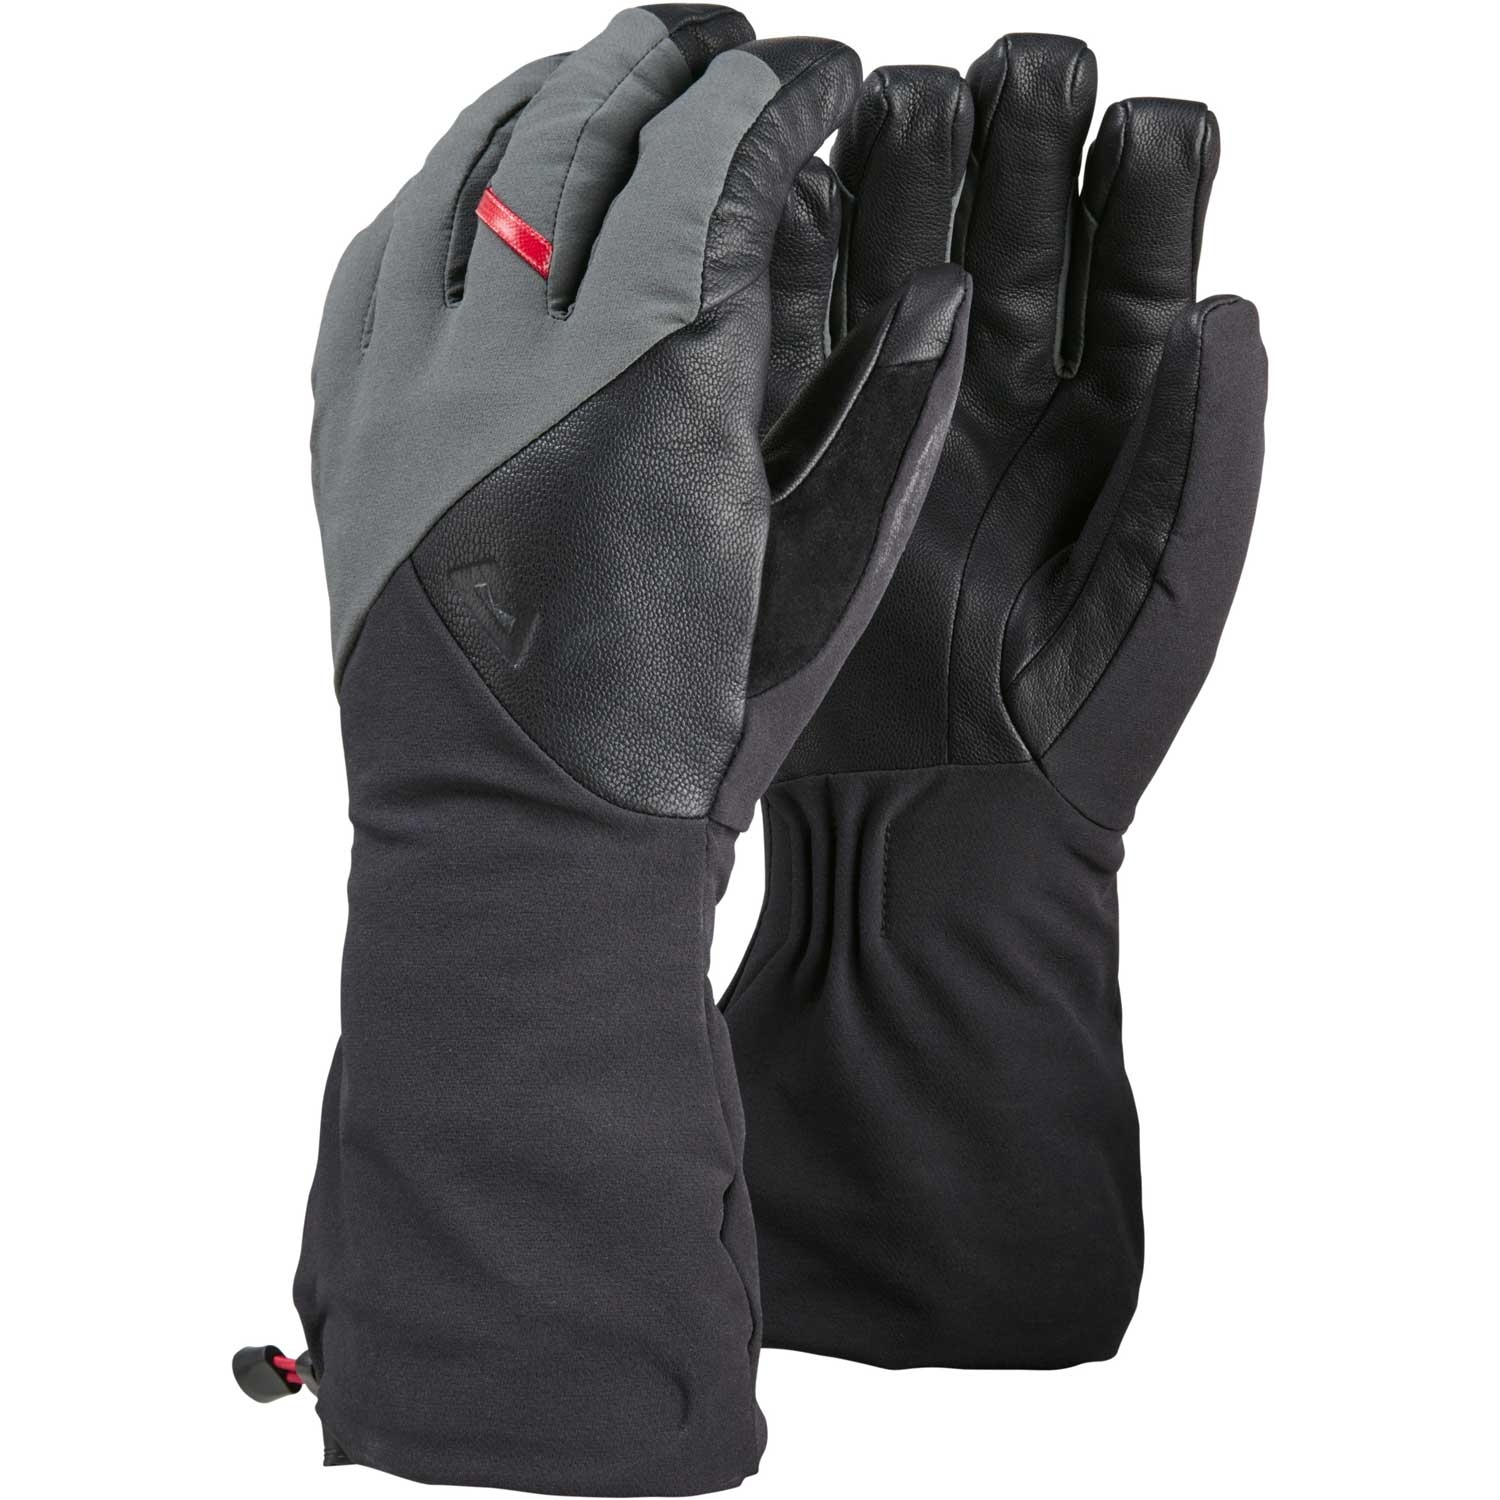 Climbing Clothing Accessories